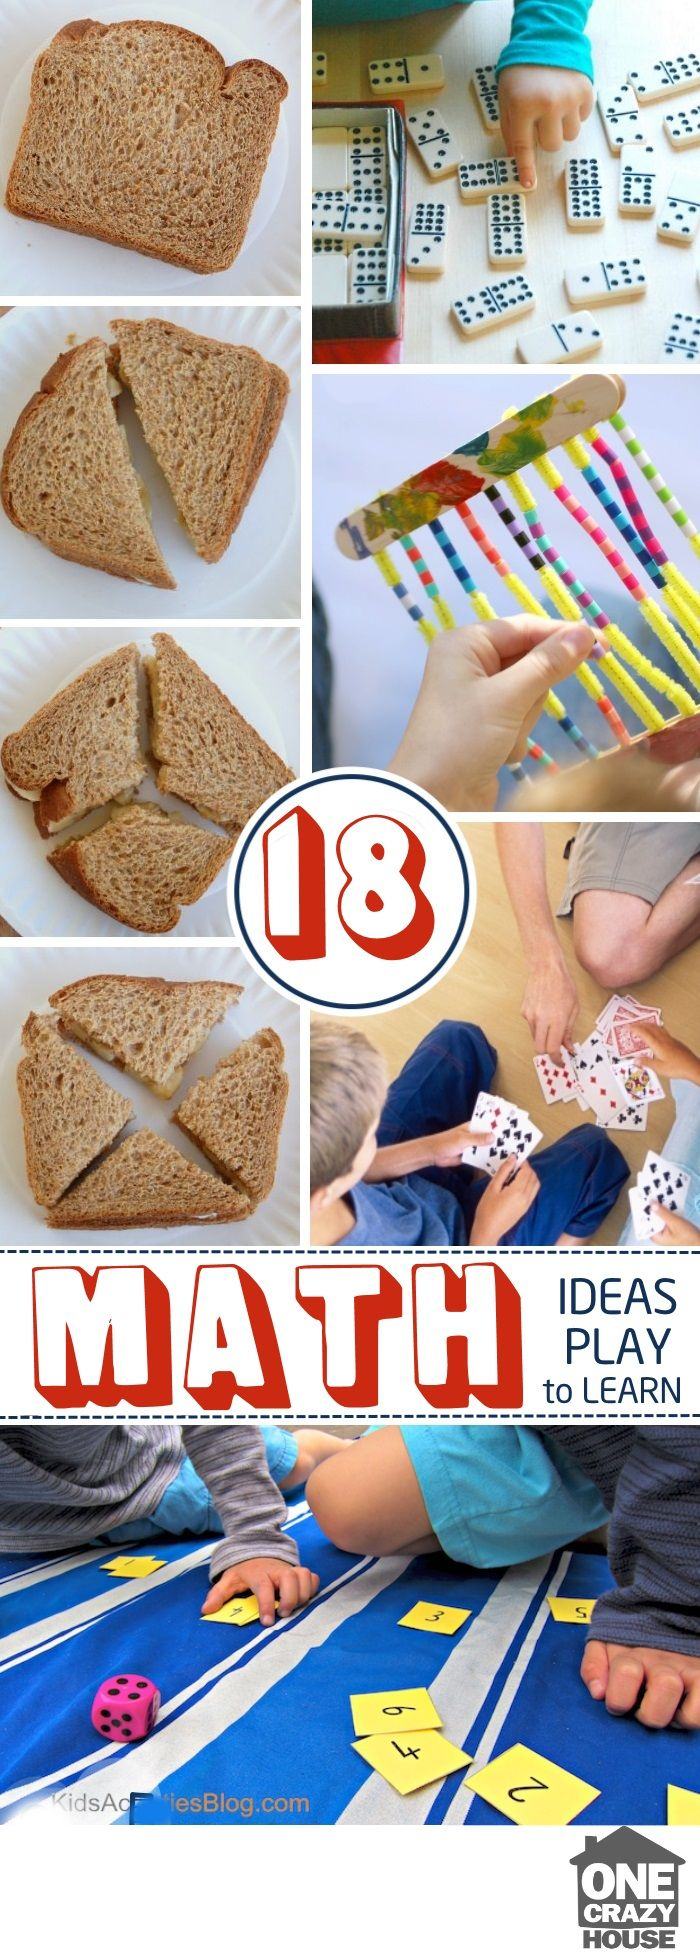 Painless kids math facts and